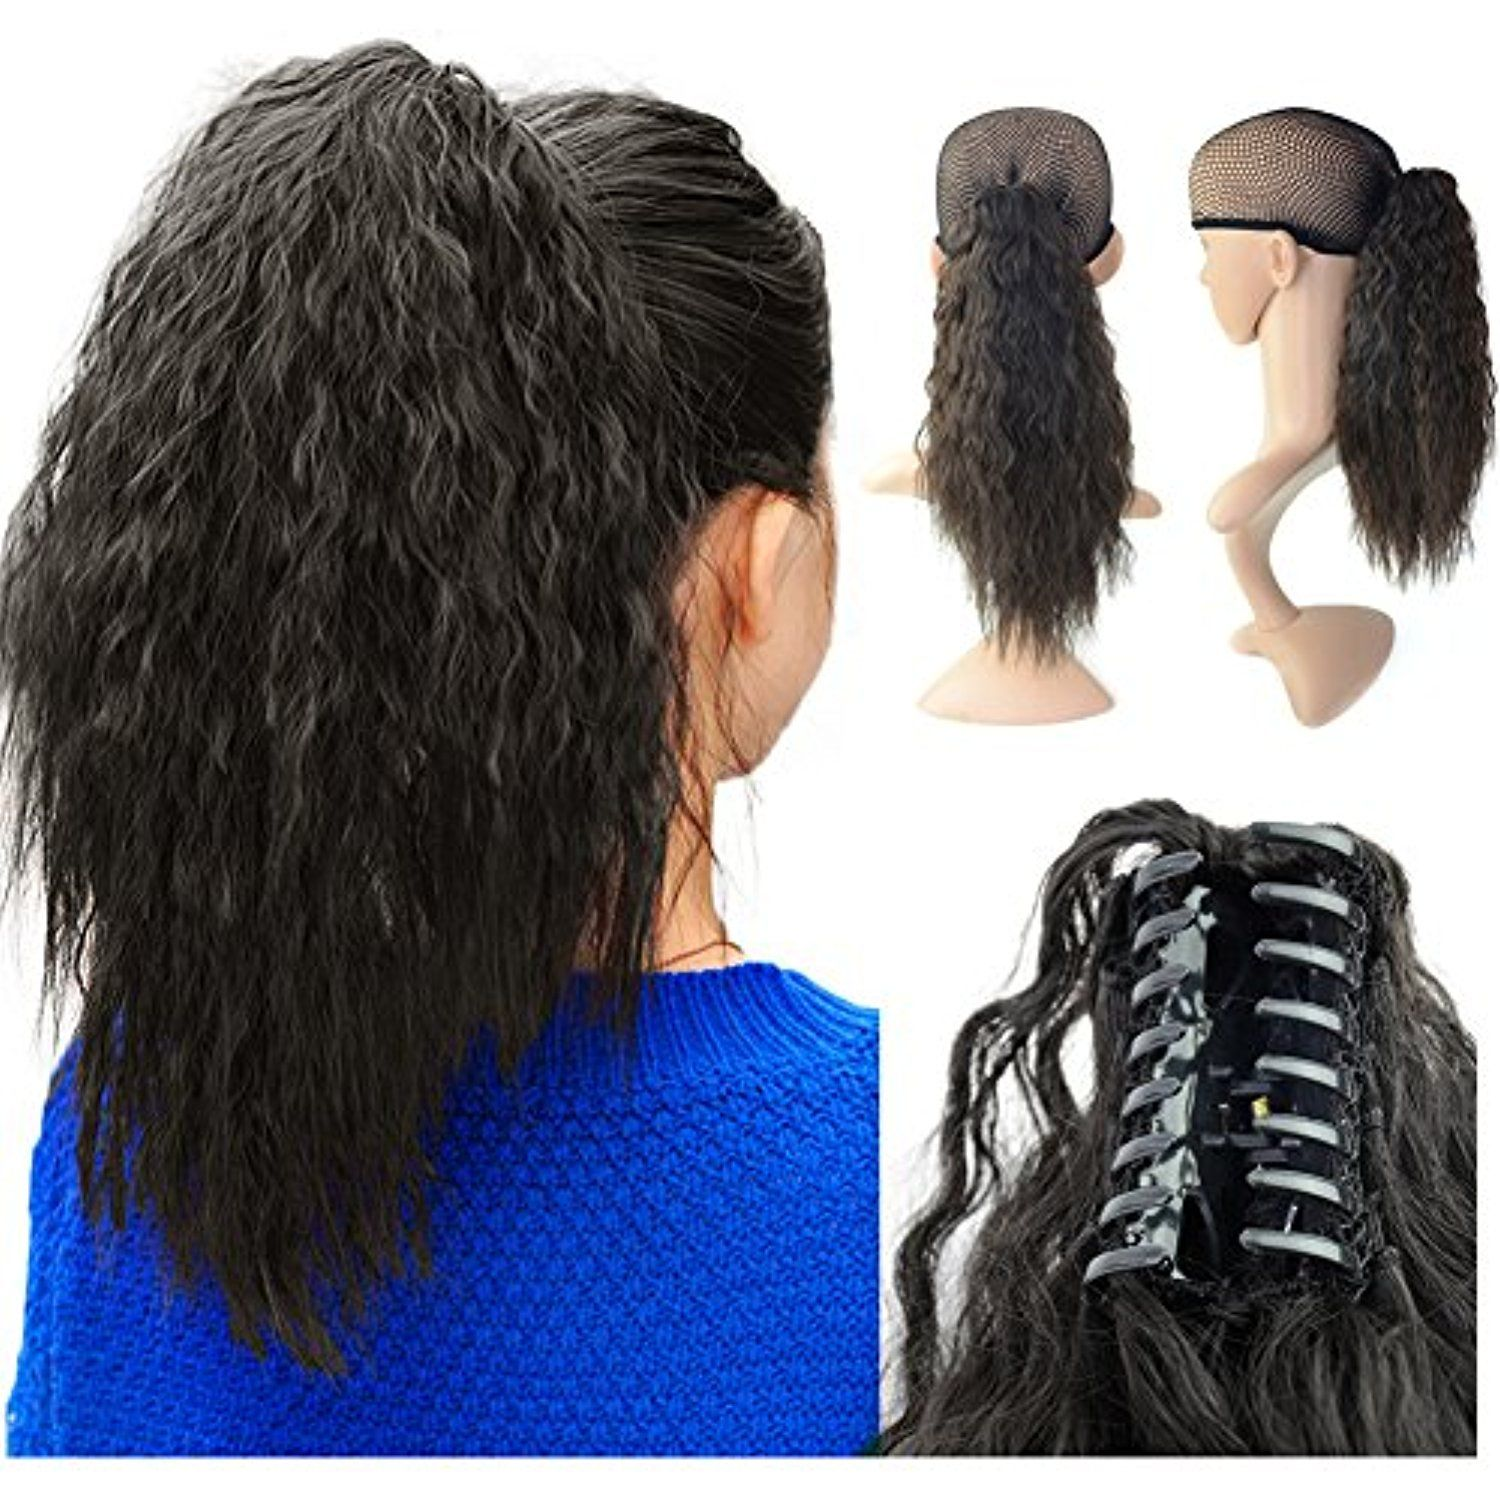 Beauty Angelbella 15 Claw Ponytail Clip In Hair Extensions